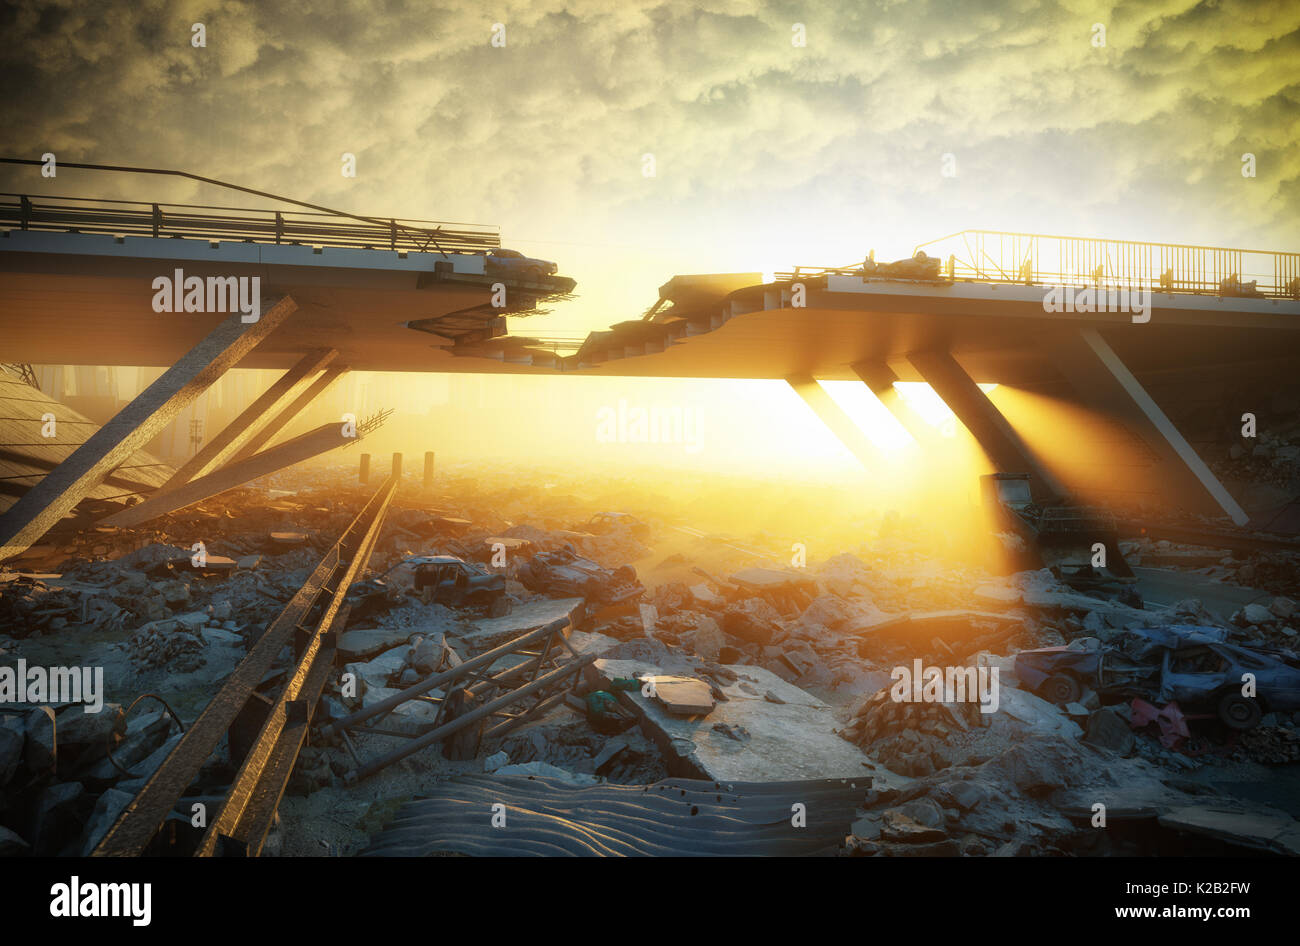 Ruins of a city. Apocalyptic landscape.3d illustration concept - Stock Image